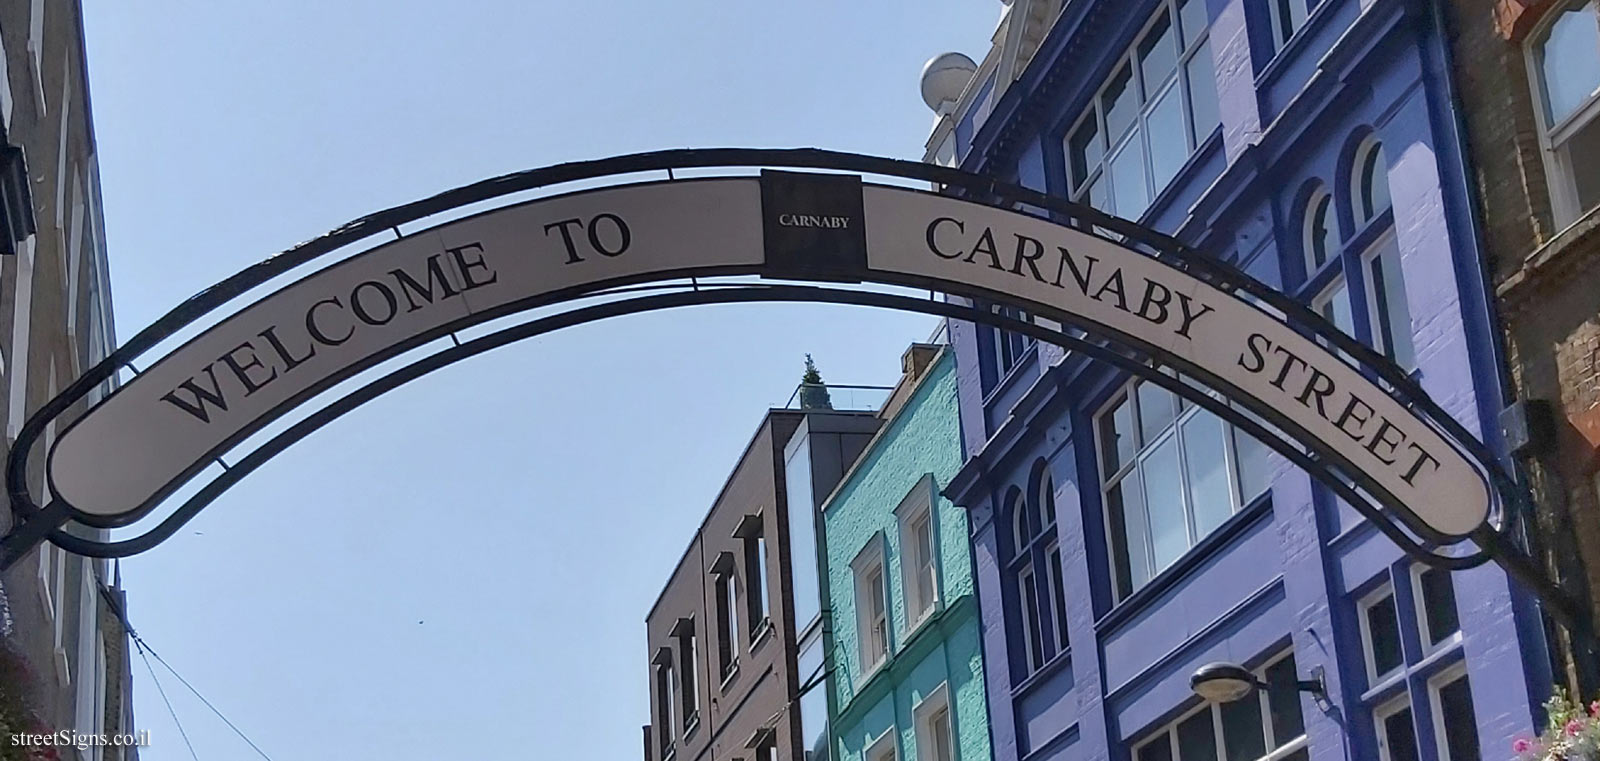 London -  The sign posted on Carnaby Street